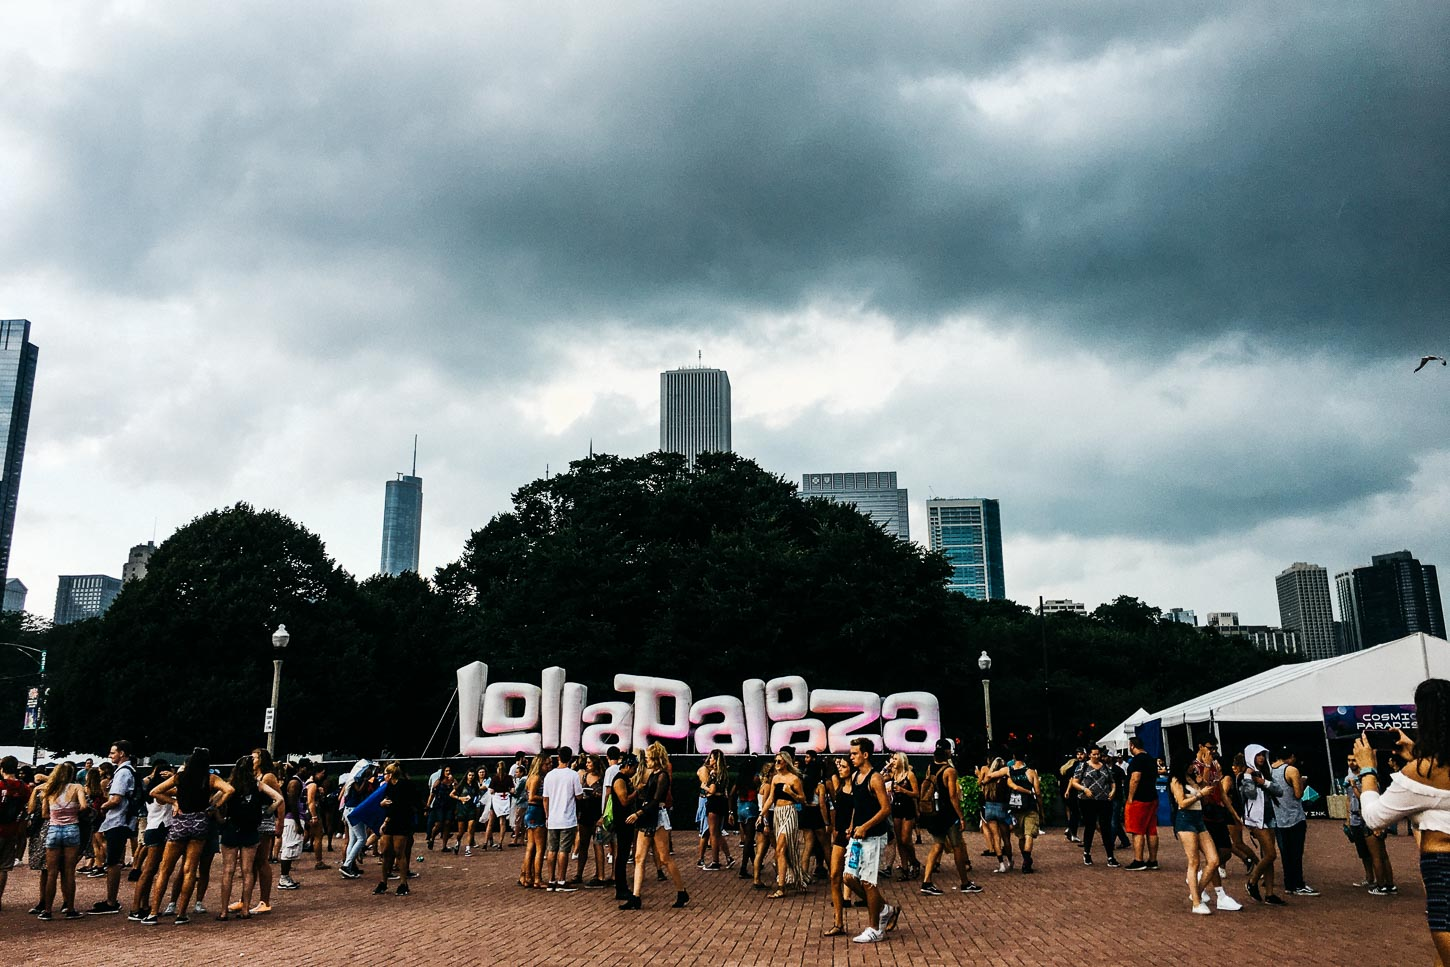 Chow Town: What to Eat at Lollapalooza 2017